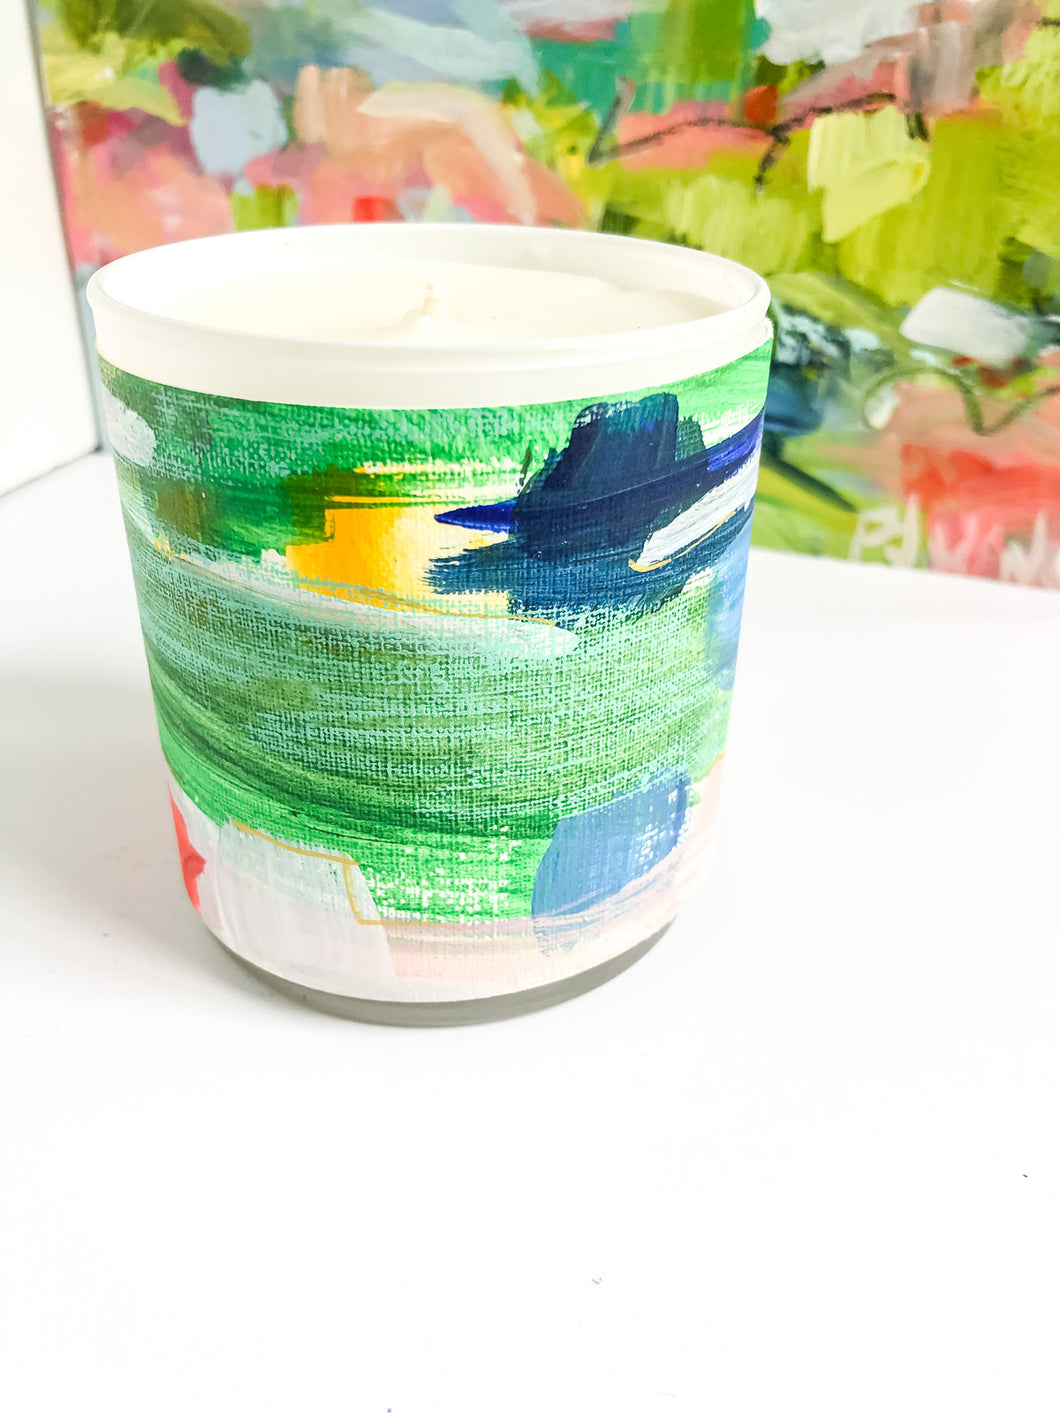 ORIGINAL FINE ART WRAPPED CANDLE: THREE